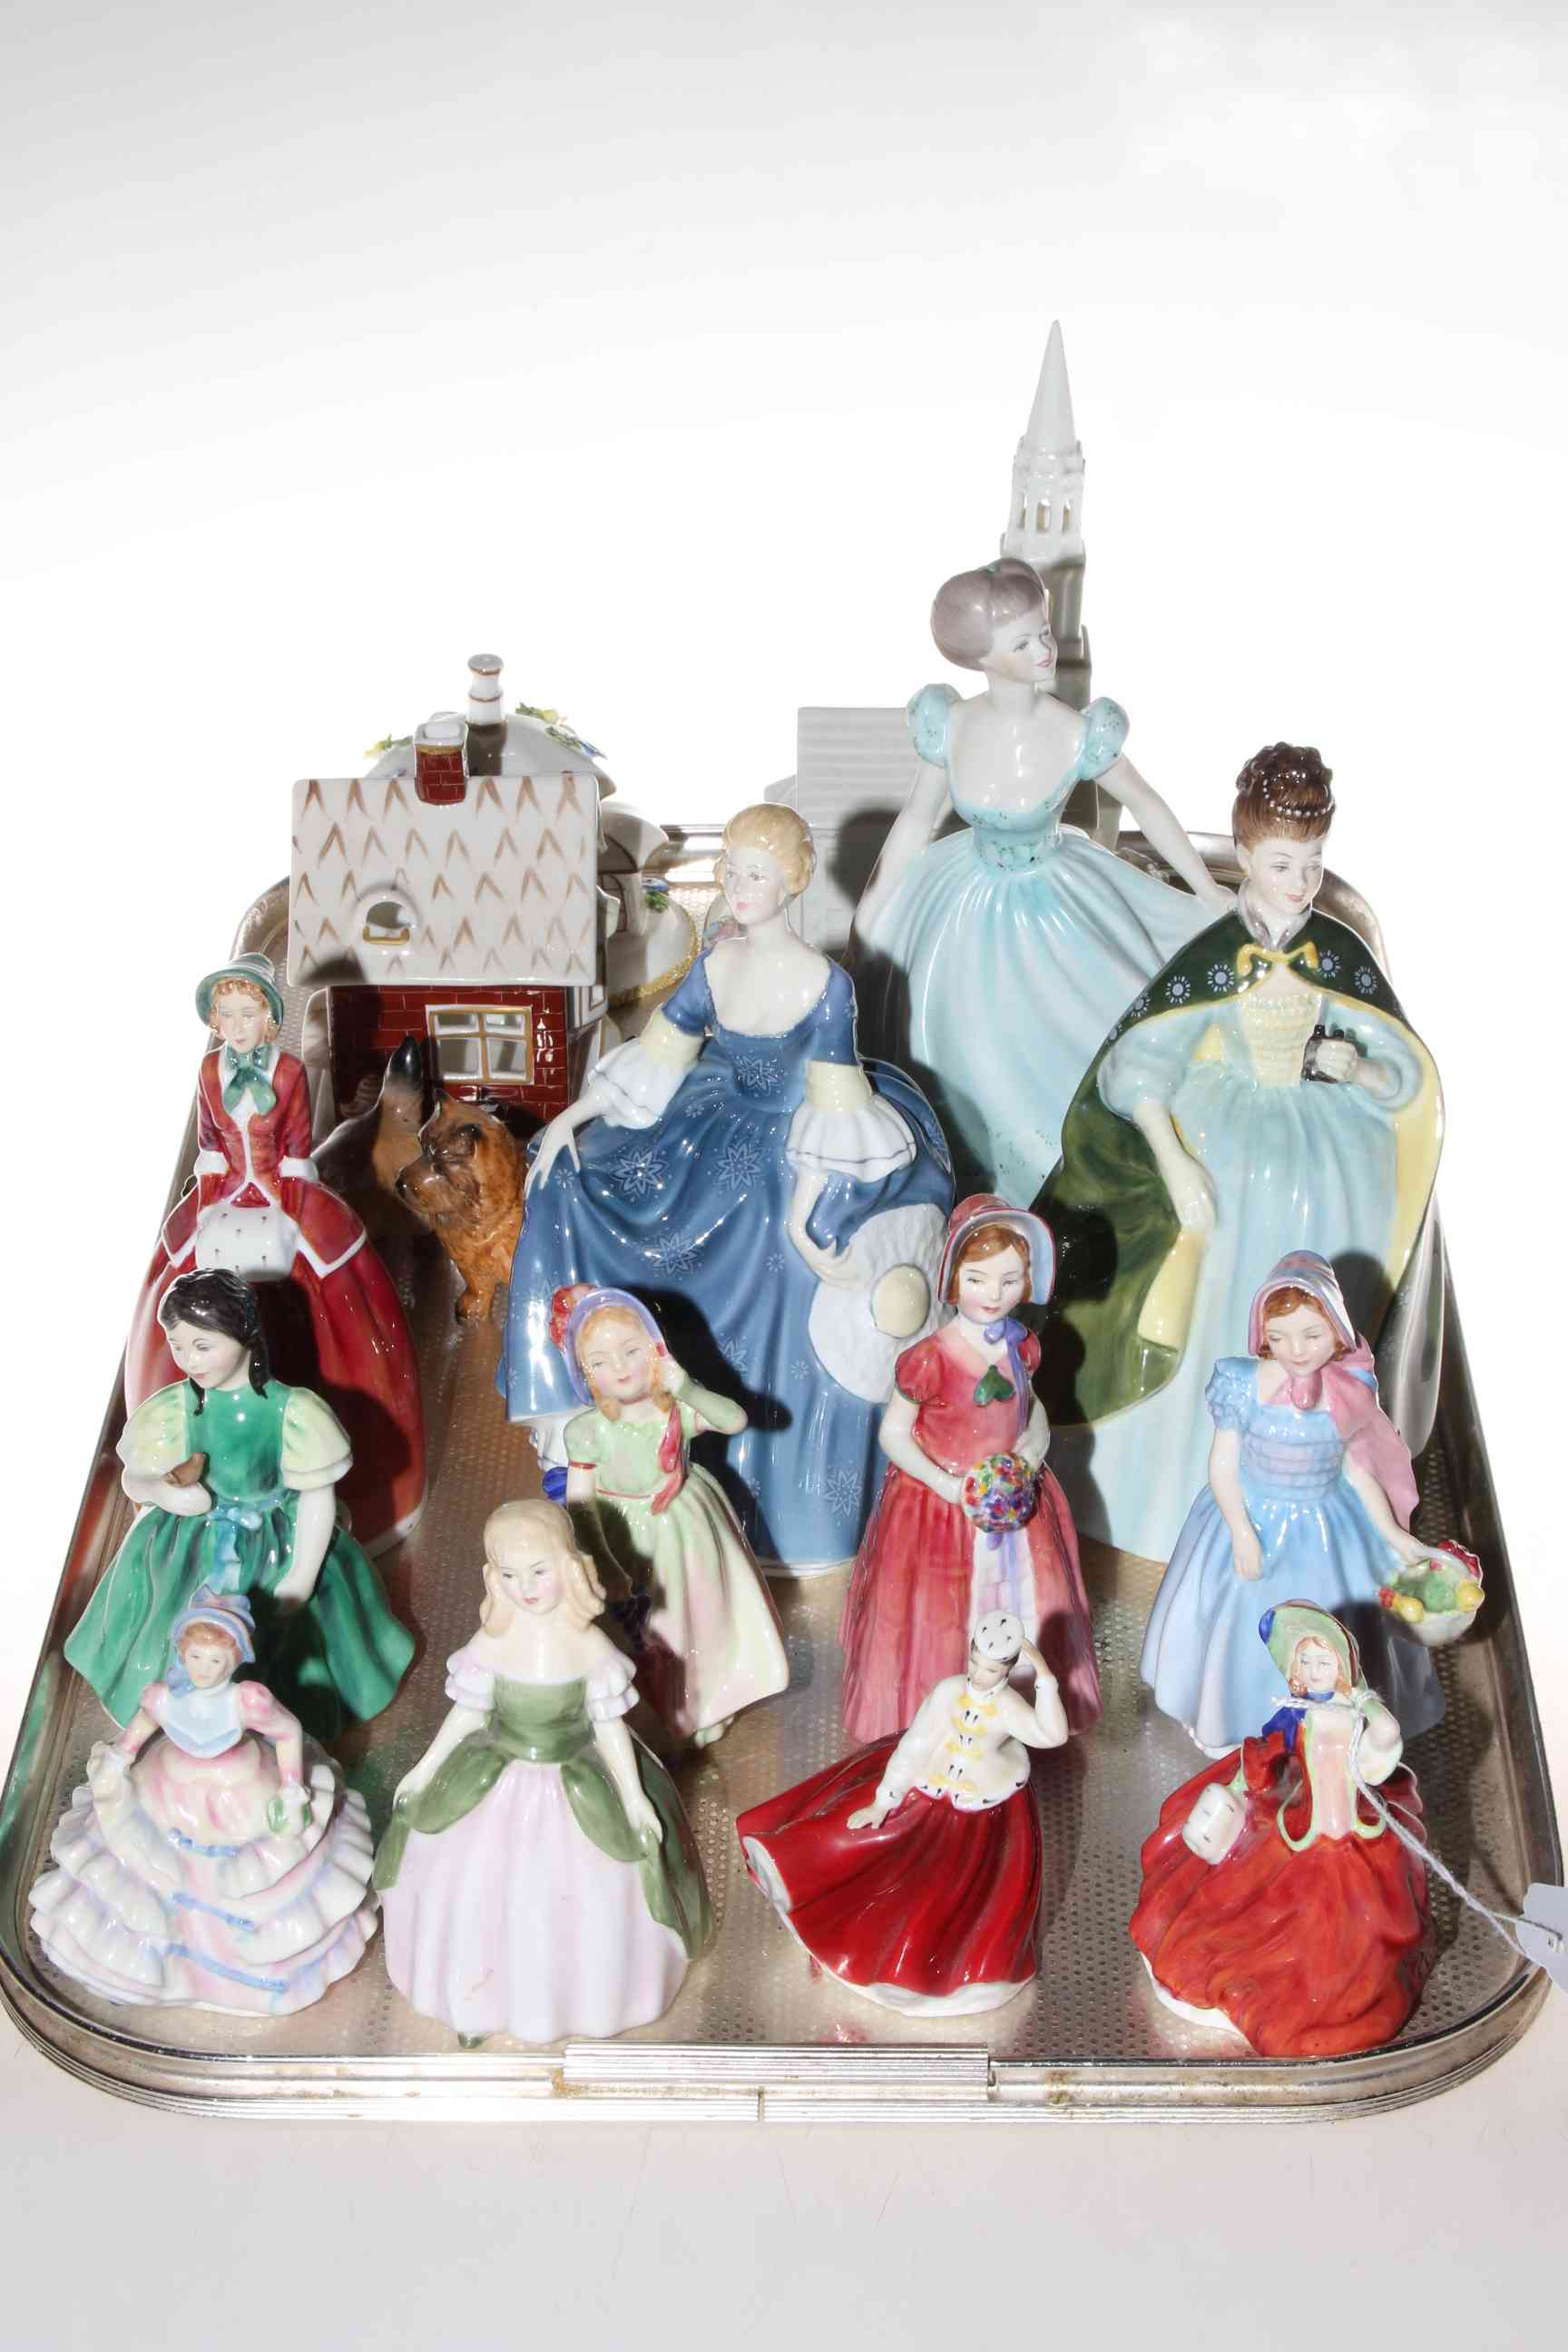 Lot 11 - Ten Royal Doulton and Coalport figurines, Staffordshire Bell figure,